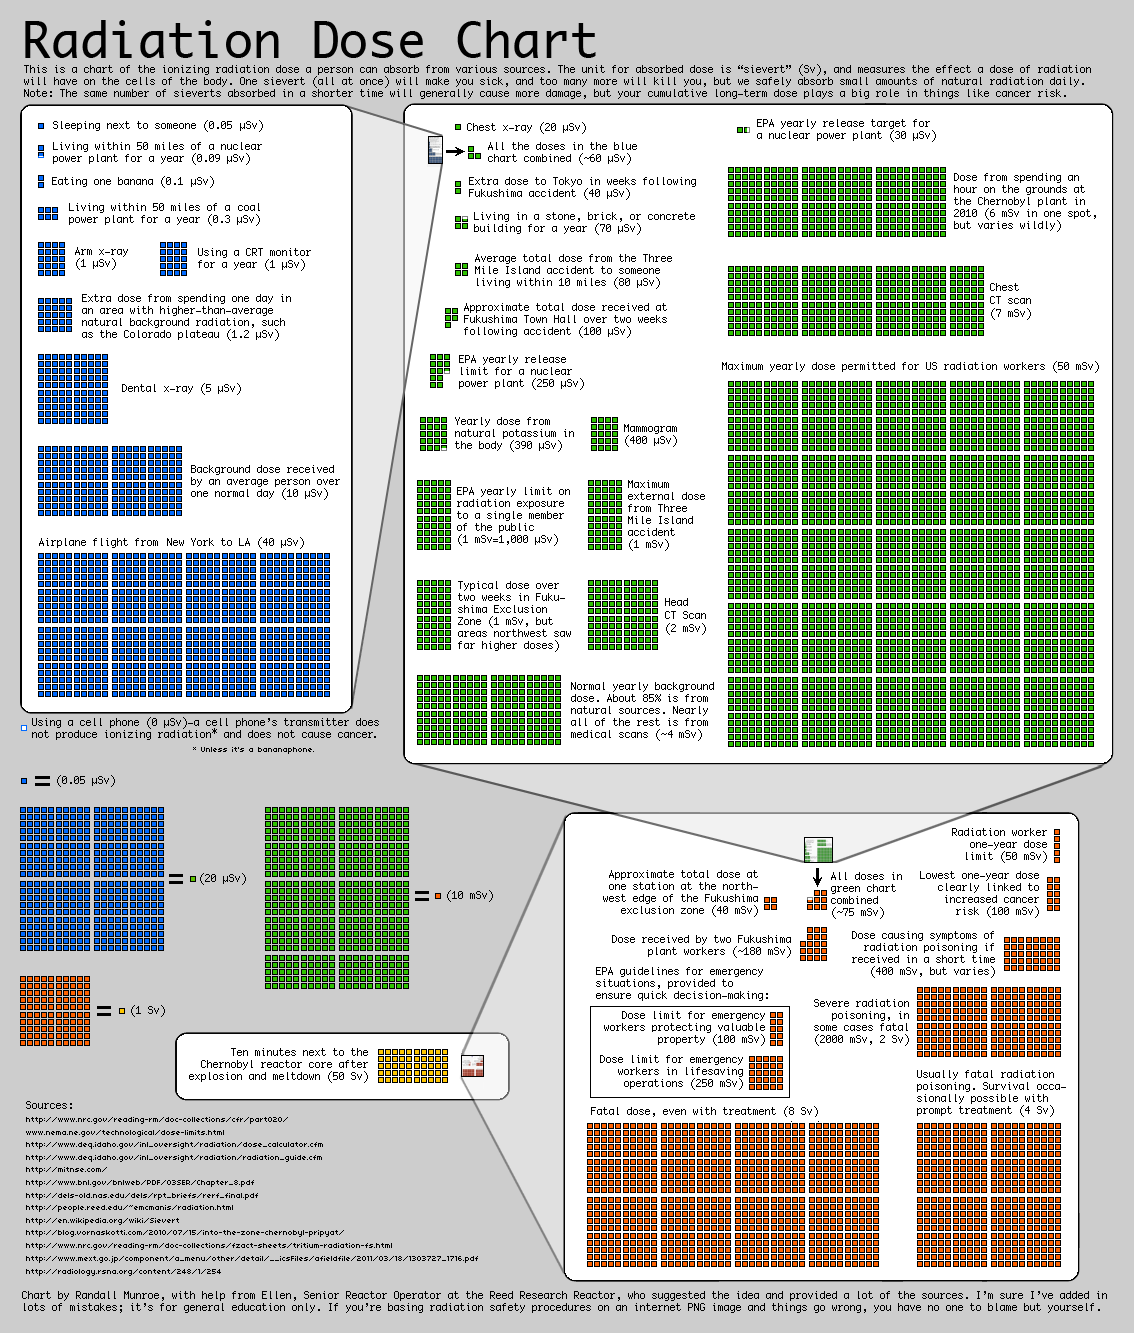 XKCD's radiation does chart